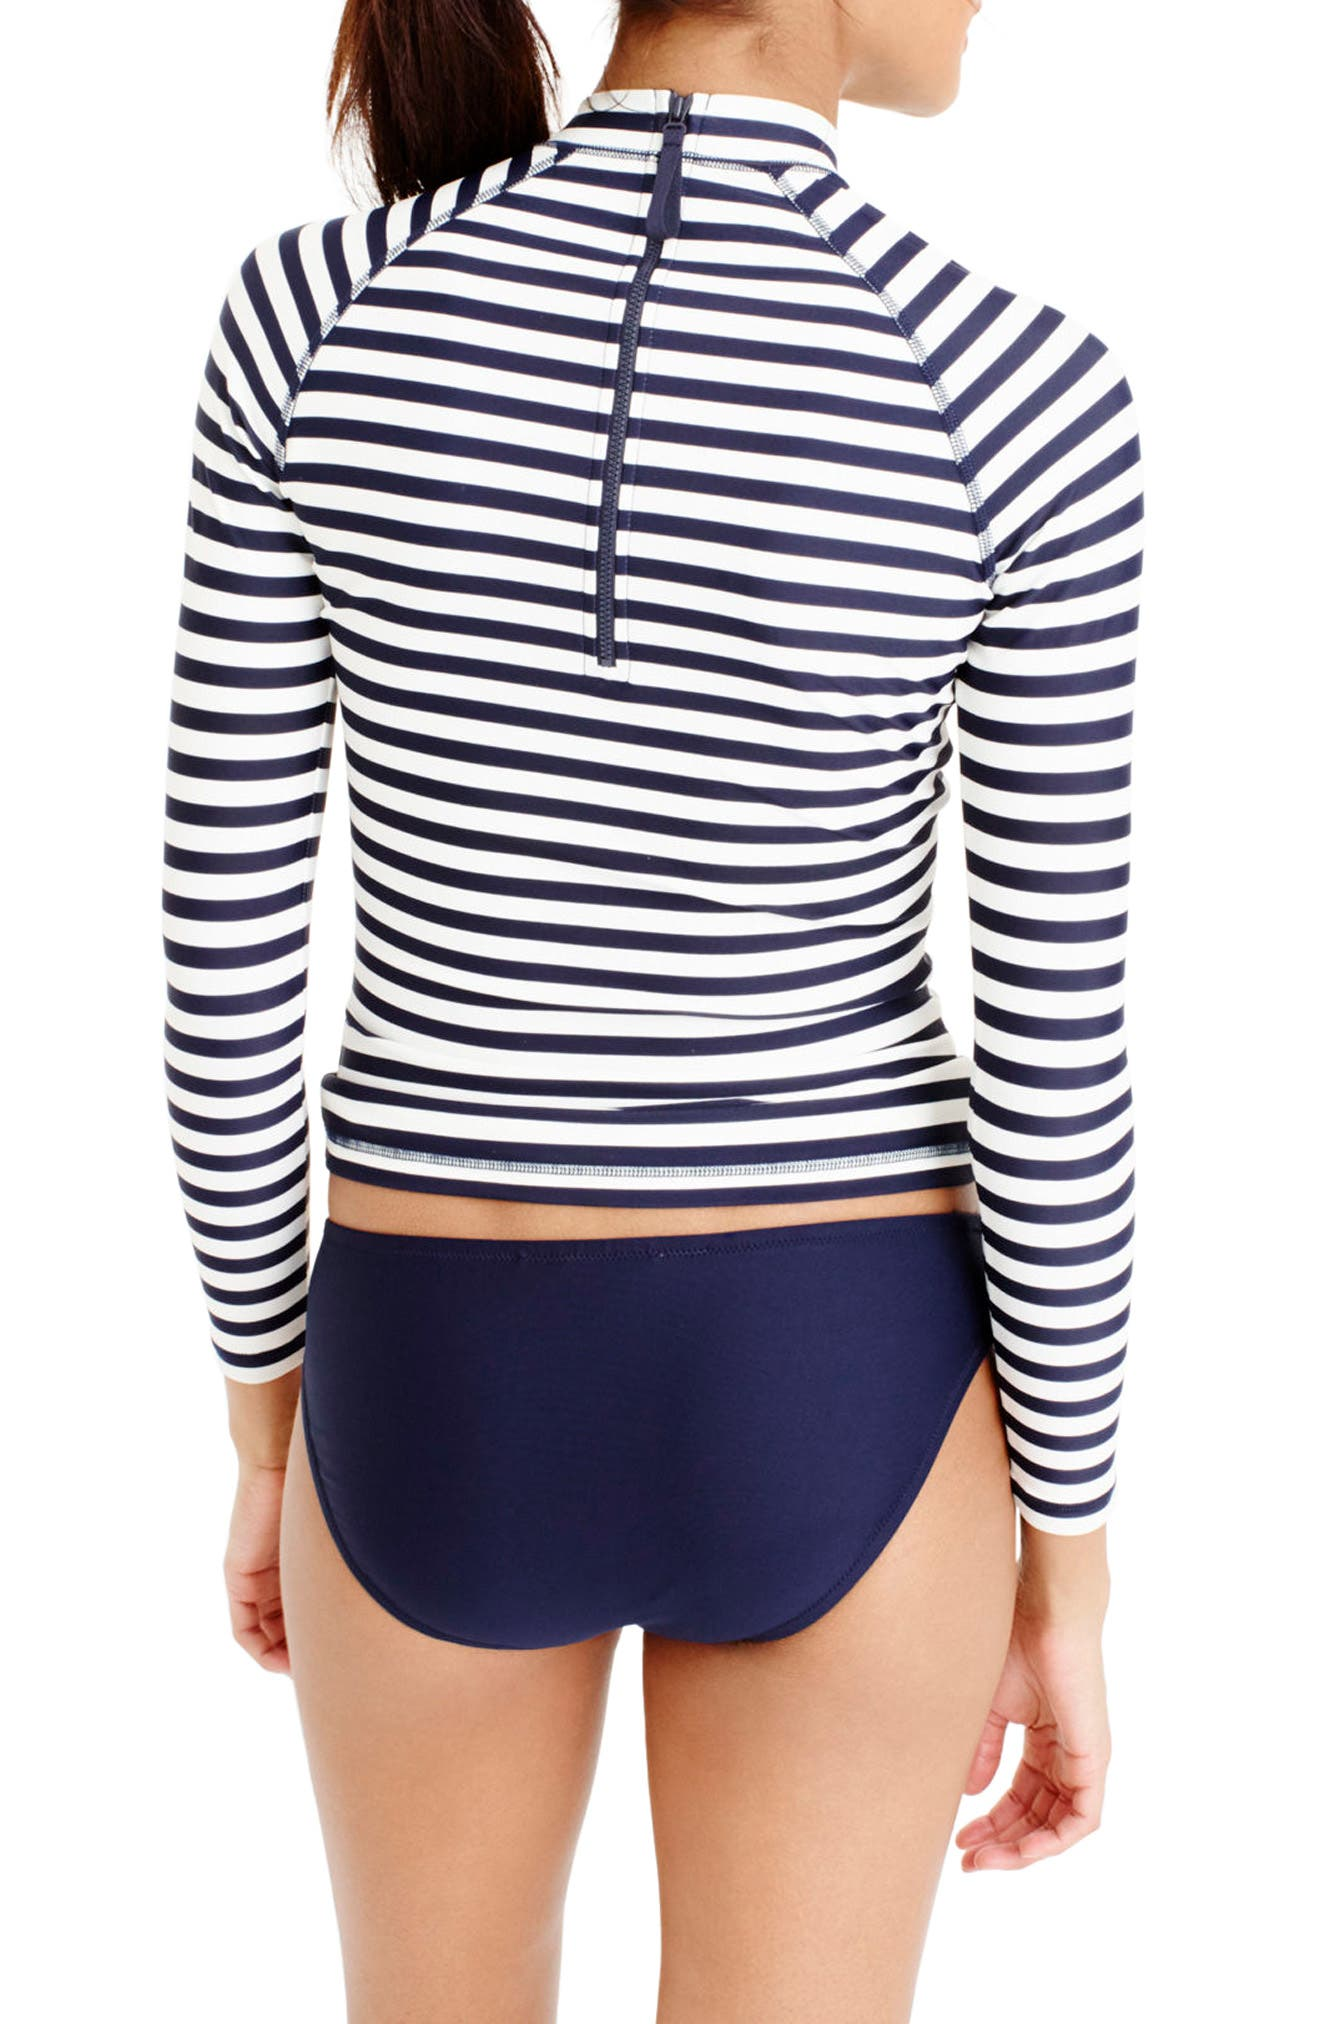 Stripe Rashguard,                             Alternate thumbnail 2, color,                             400